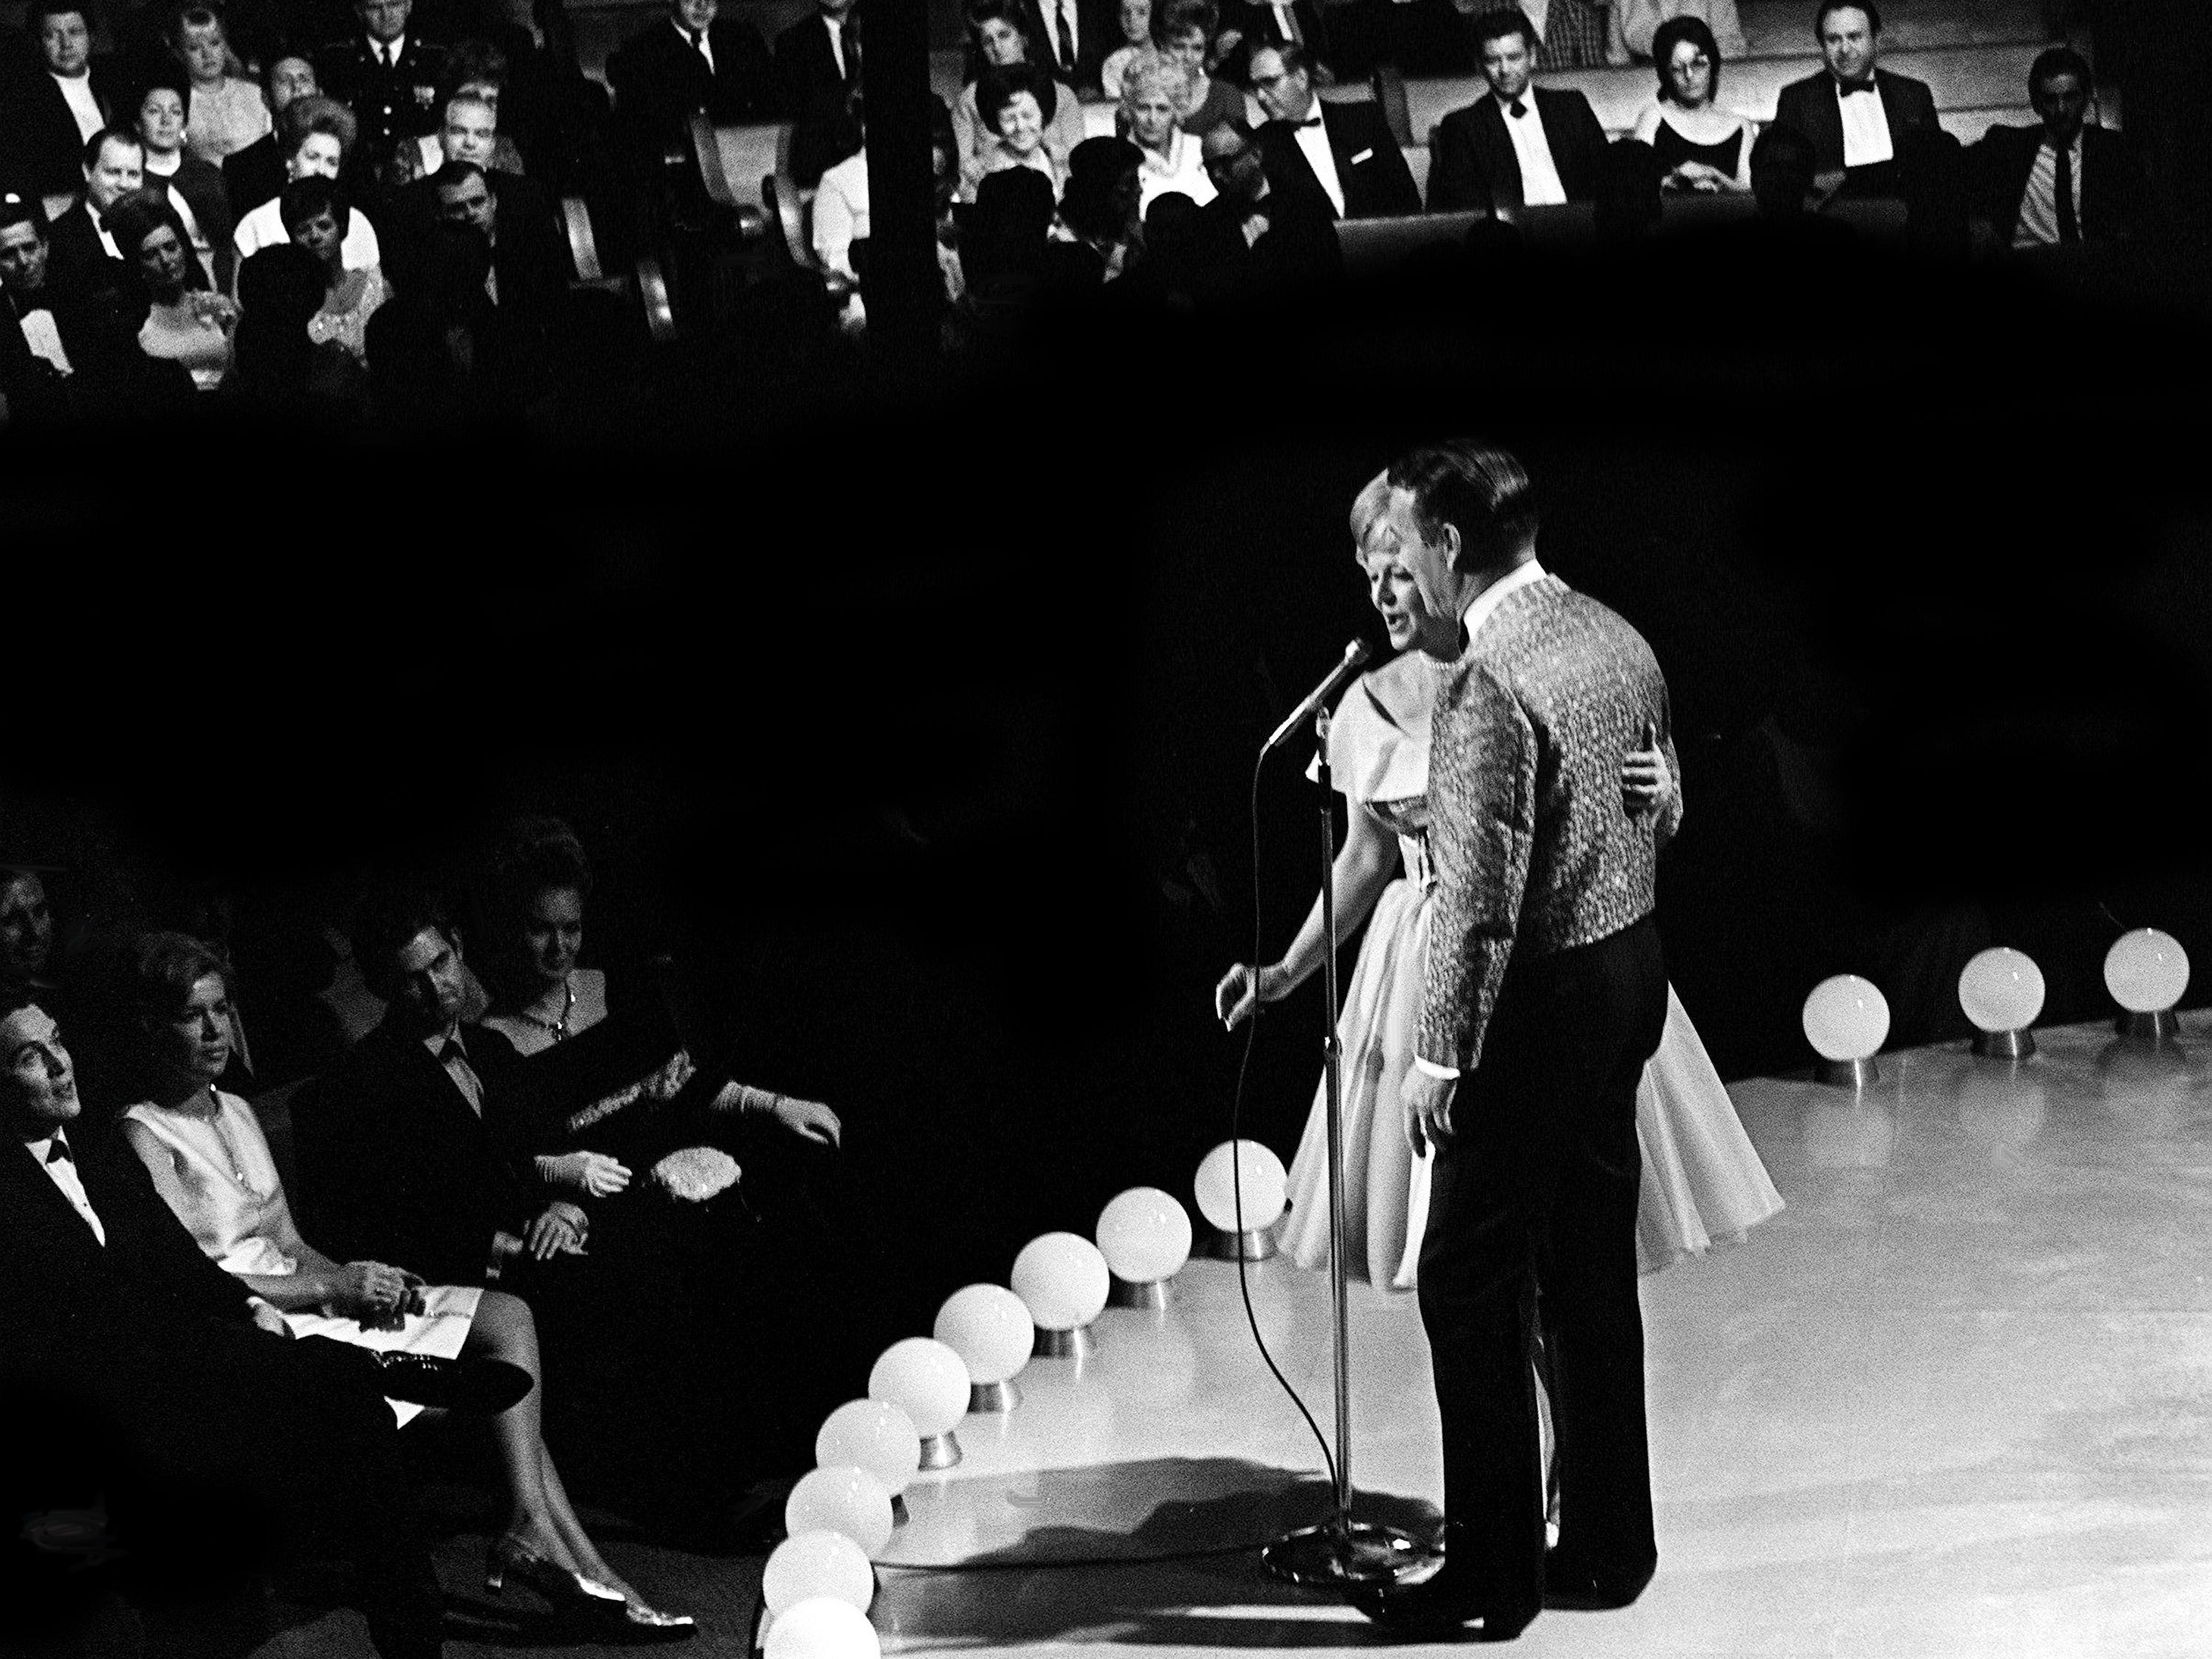 """Emcees Roy Rogers and Dale Evans greet the crowd during the second annual CMA Awards show at the Ryman Auditorium on Oct. 18, 1968. The show was taped by NBC for airing on the """"Kraft Music Hall."""""""